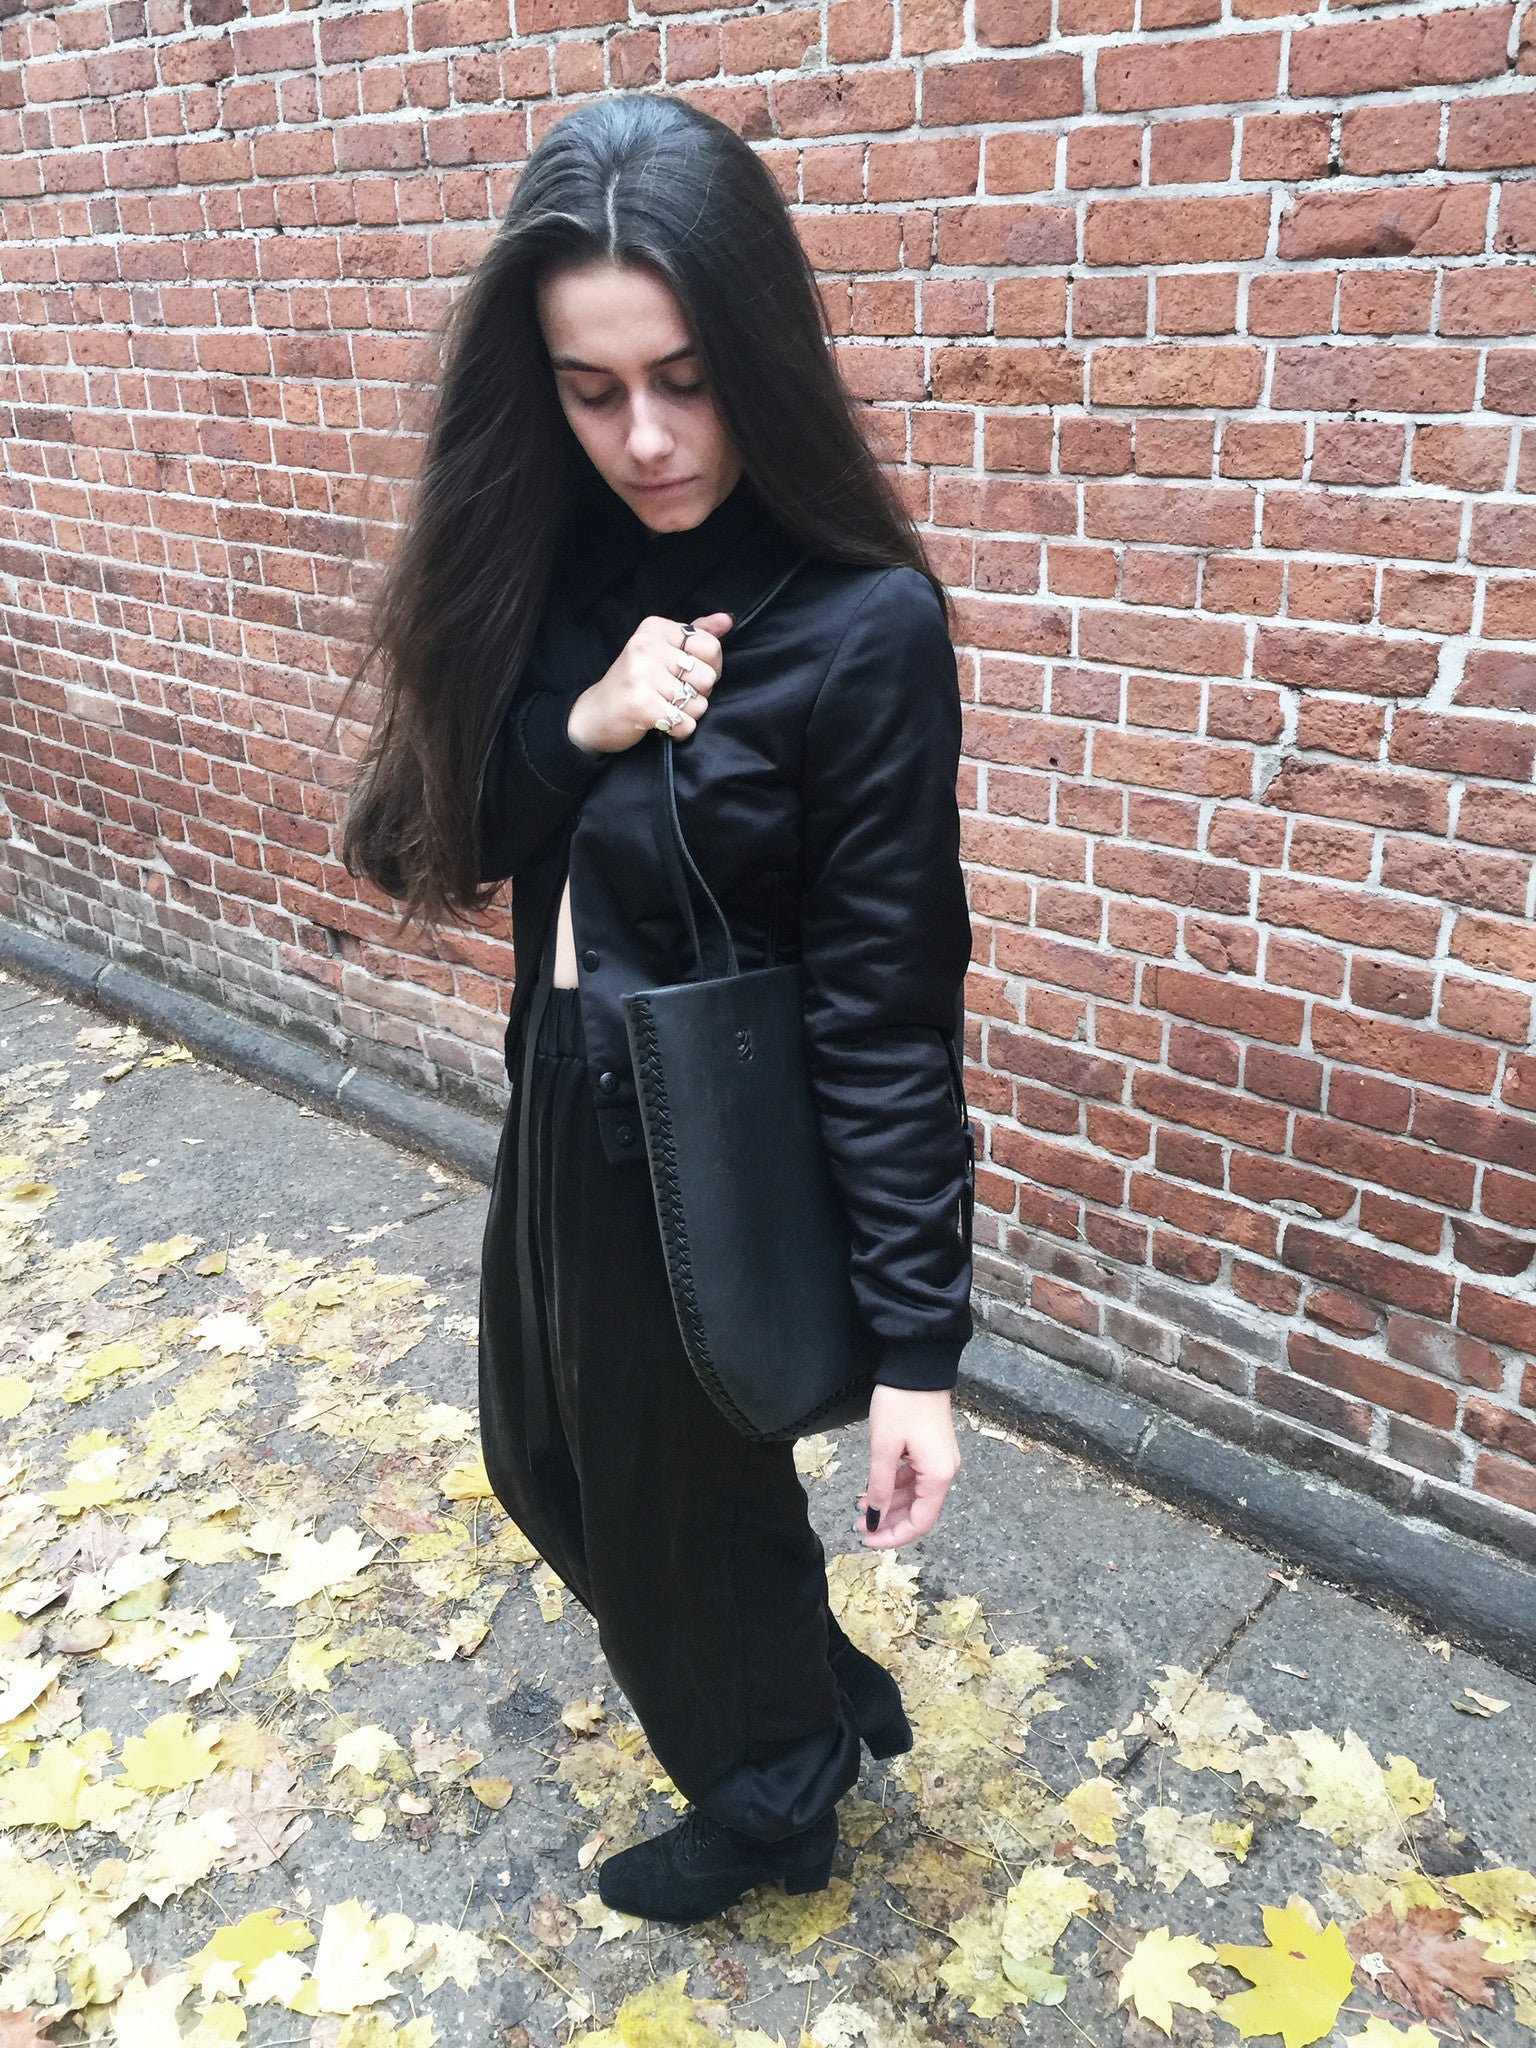 Wendy Nichol Clothing Designer Made to Order Custom Tailoring Made to Measure Handmade in NYC New York City Fashion Runway Show AW16 13 Incarnations Black Silk Satin Club Bomber Jacket Silk Charmeuse Ruche Ankle Pants Rayon Wool Interlining Warm Sweatpants High Waist Waisted